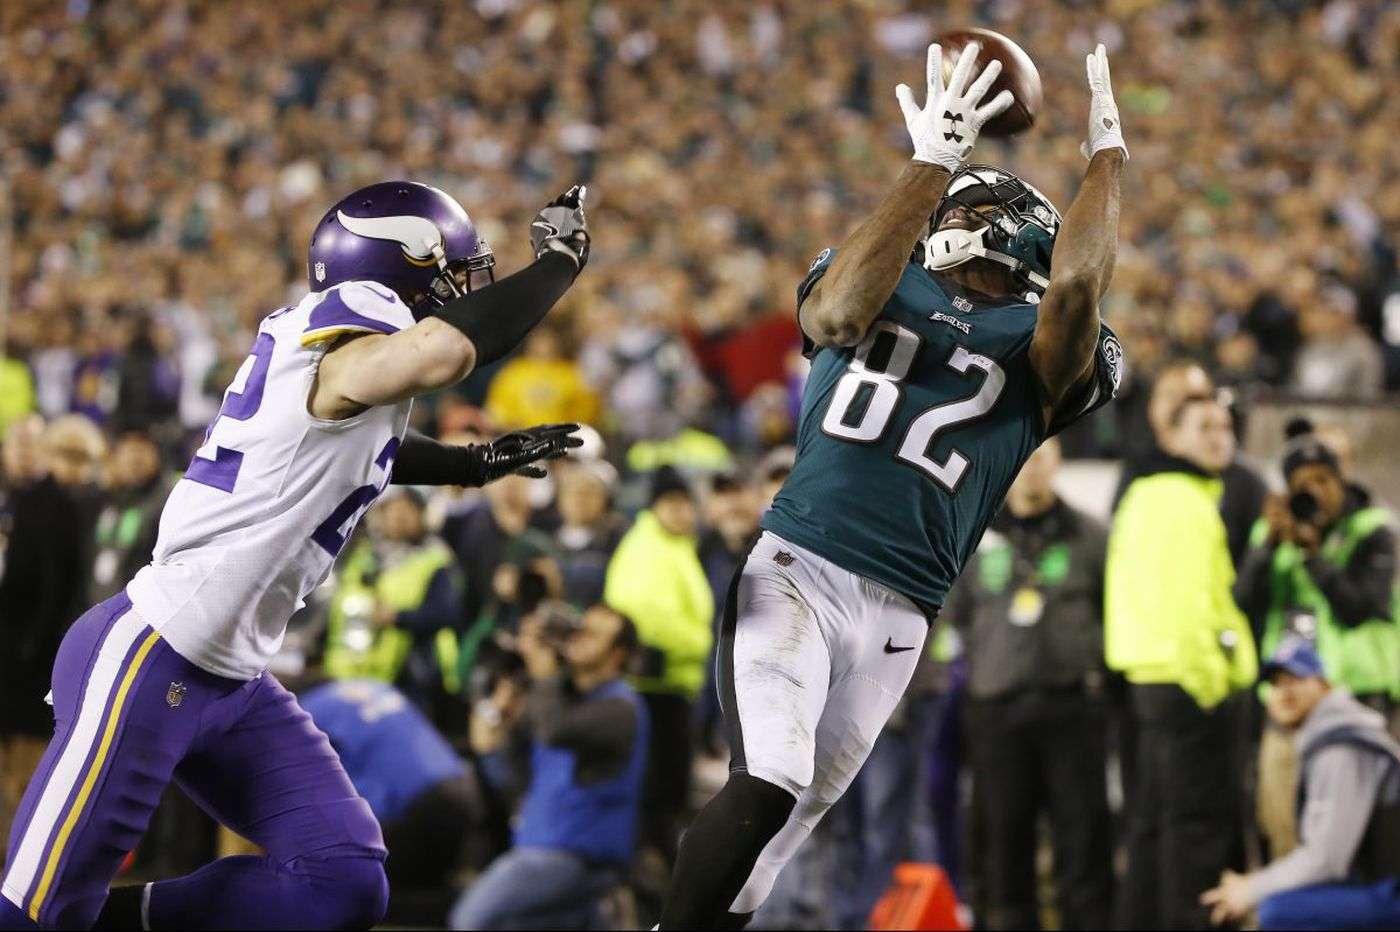 Inside the Eagles' Nick Foles-to-Torrey Smith flea-flicker touchdown pass in the NFC championship game